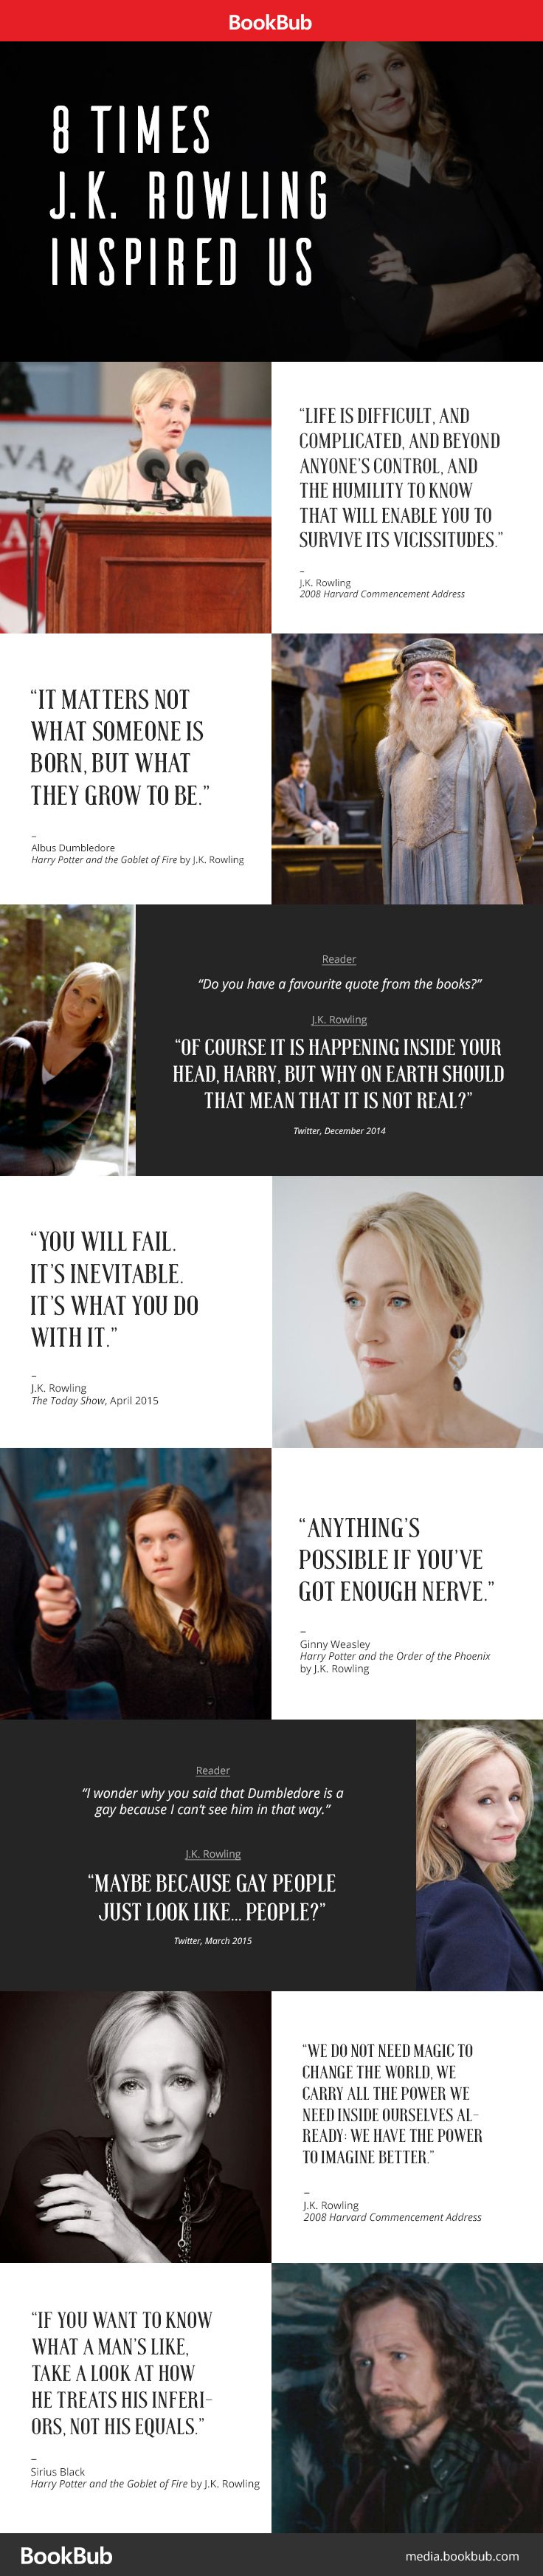 J.K. Rowling's Words of Wisdom: 20 of Her Most Inspiring Quotes